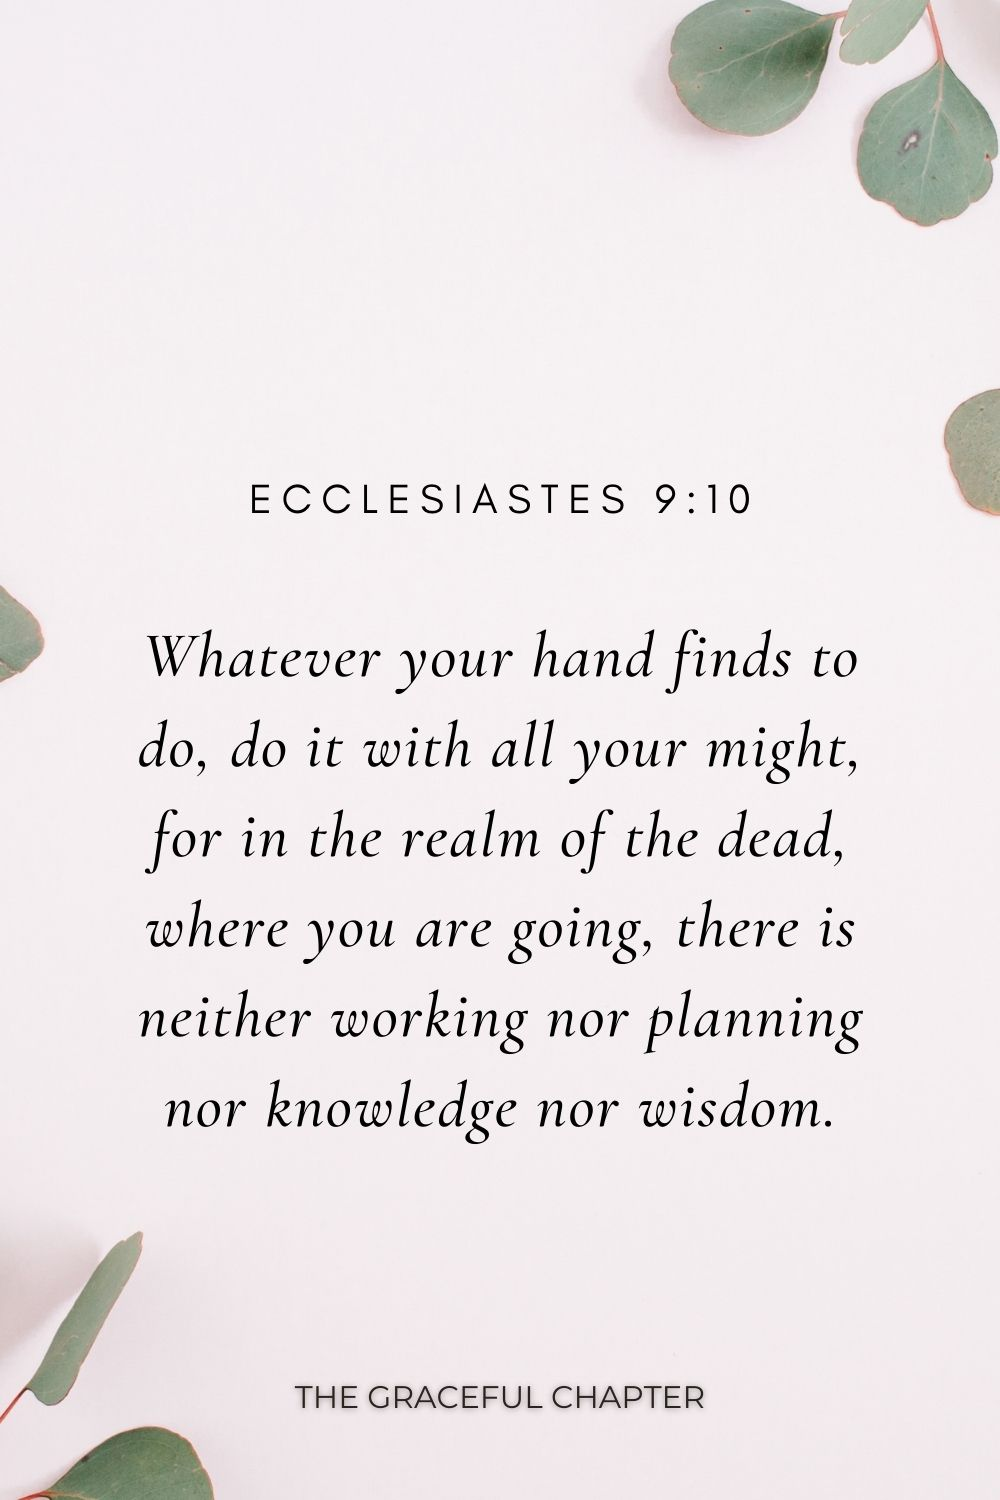 Whatever your hand finds to do, do it with all your might, for in the realm of the dead, where you are going, there is neither working nor planning nor knowledge nor wisdom. Ecclesiastes 9:10